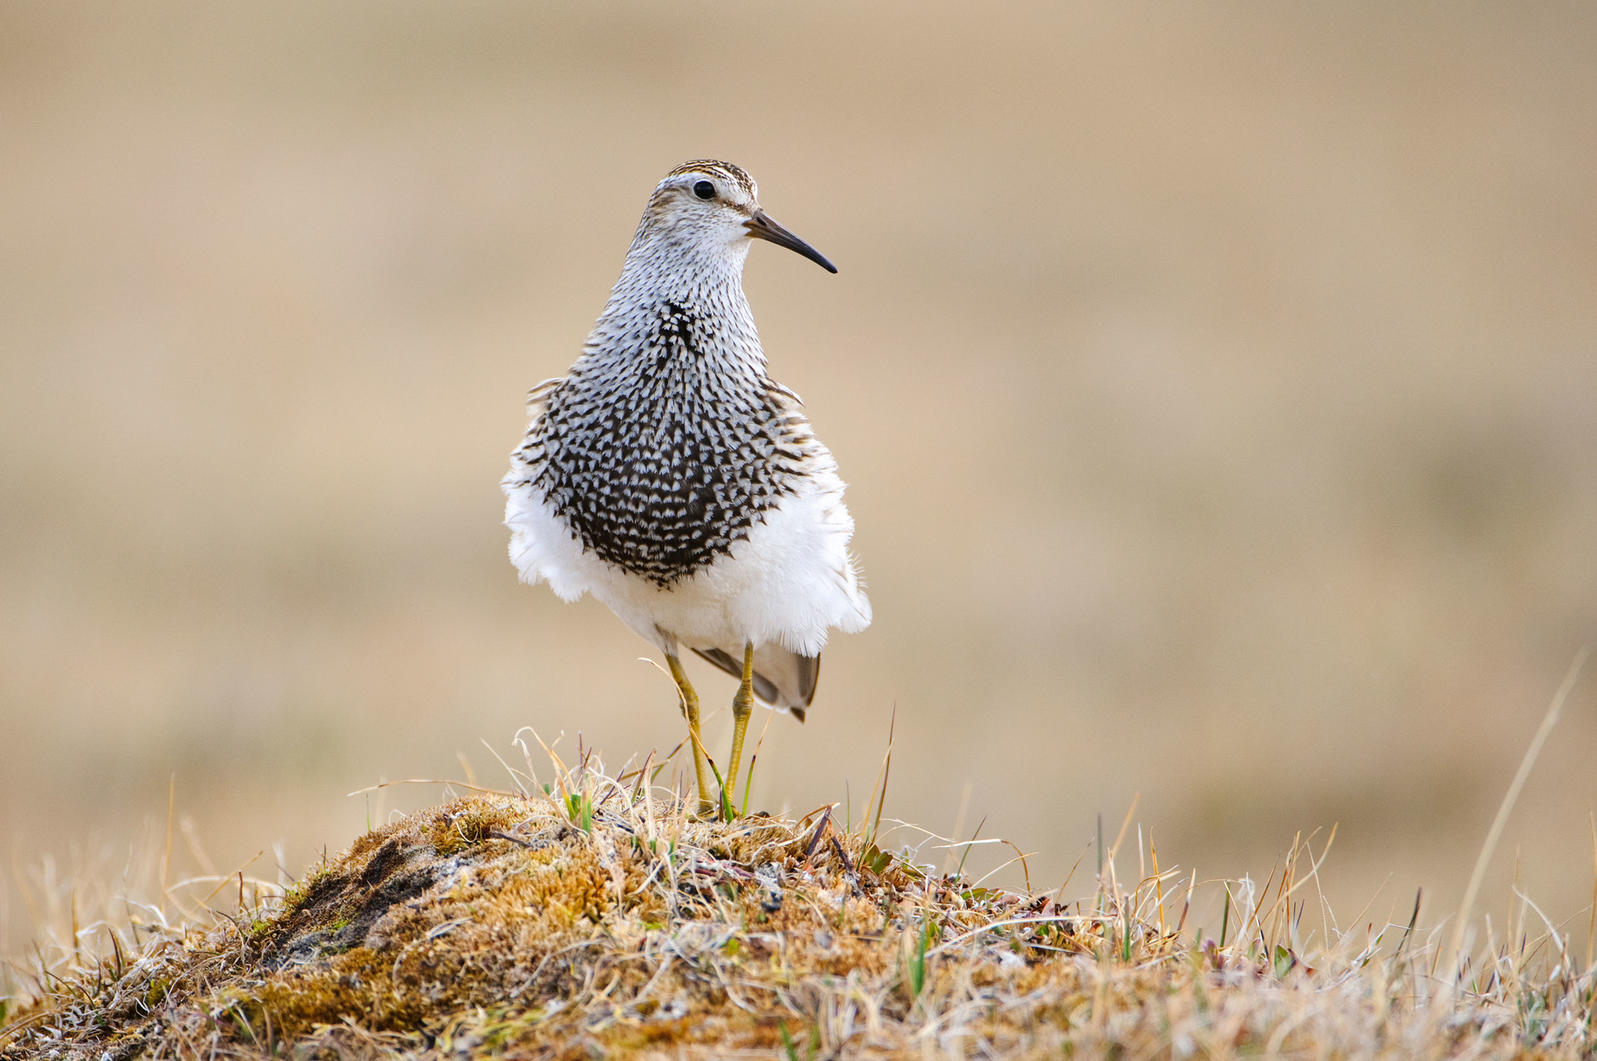 An adult male Pectoral Sandpiper takes a break between its hoot-filled display flights. Gerrit Vyn/Minden Pictures